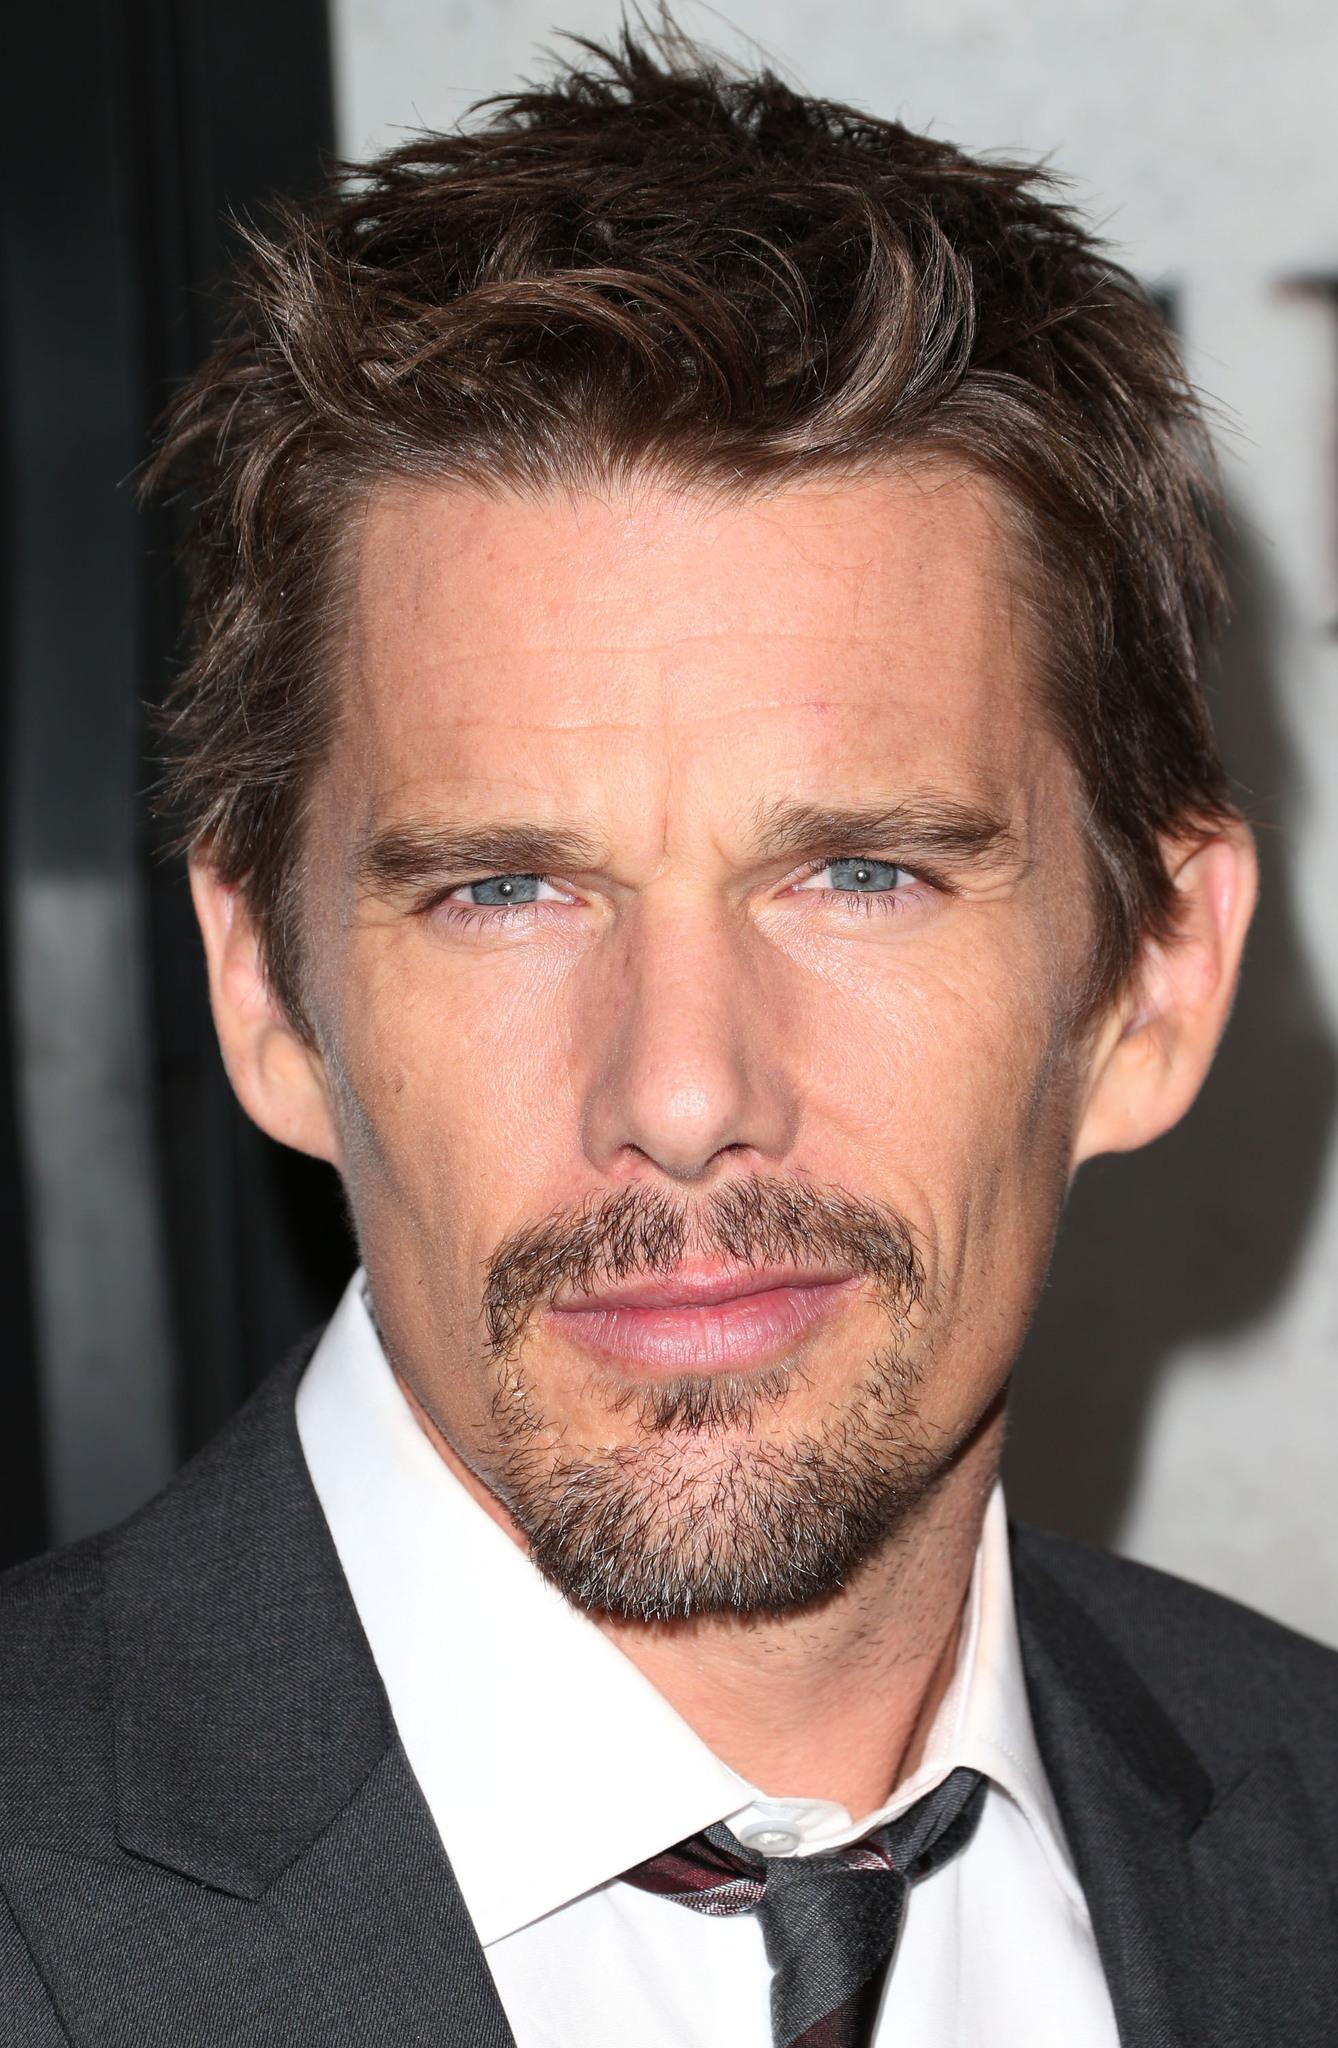 https://jeffreyklyles.files.wordpress.com/2014/10/ethan-hawke.jpg